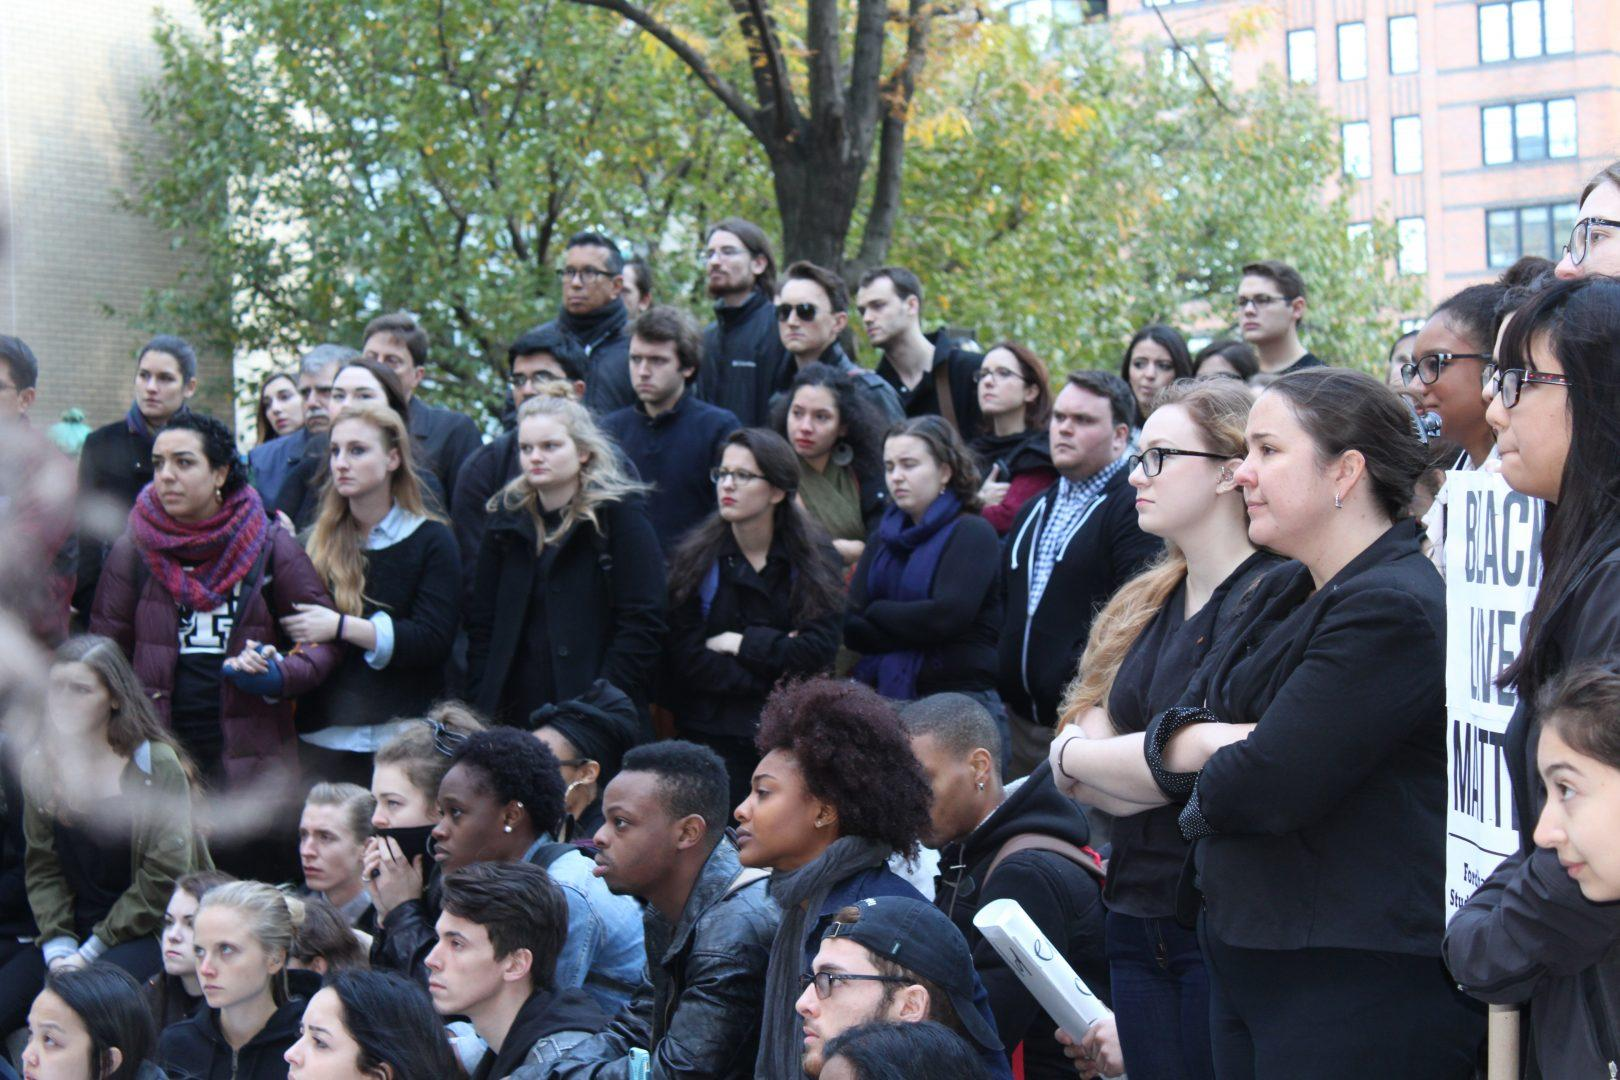 There were a large number of administrators and student leaders in attendance at the event. (CONNOR MANNION/THE OBSERVER)